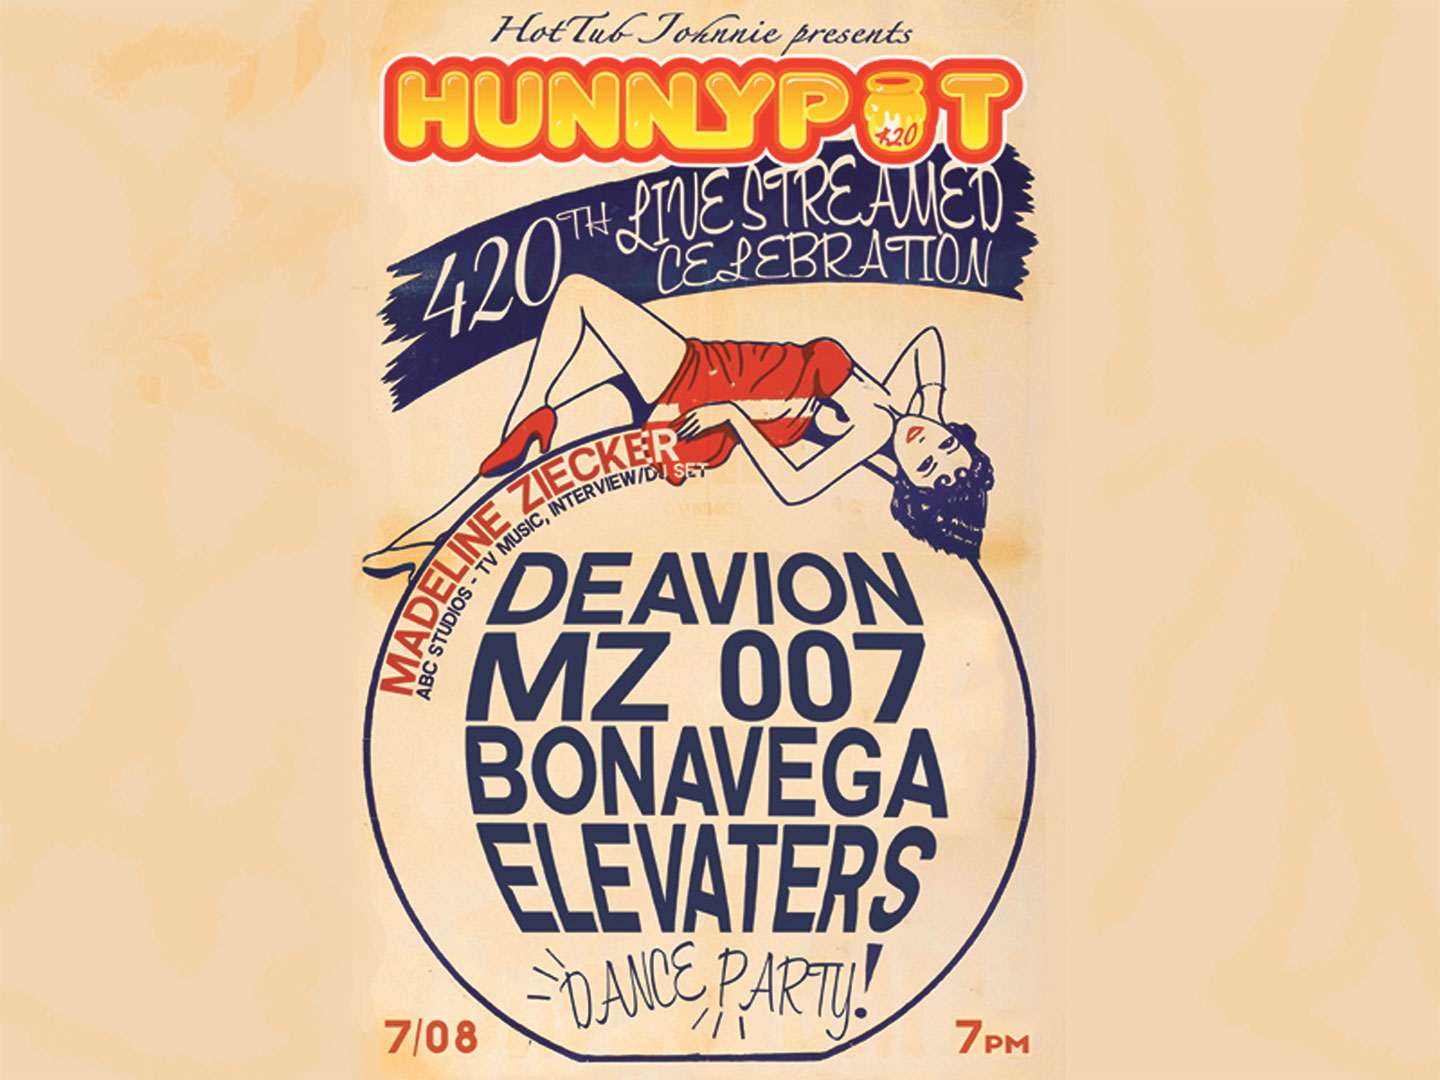 Hunnypot Radio Celebrates 420 Shows! Private GREEN Room Party